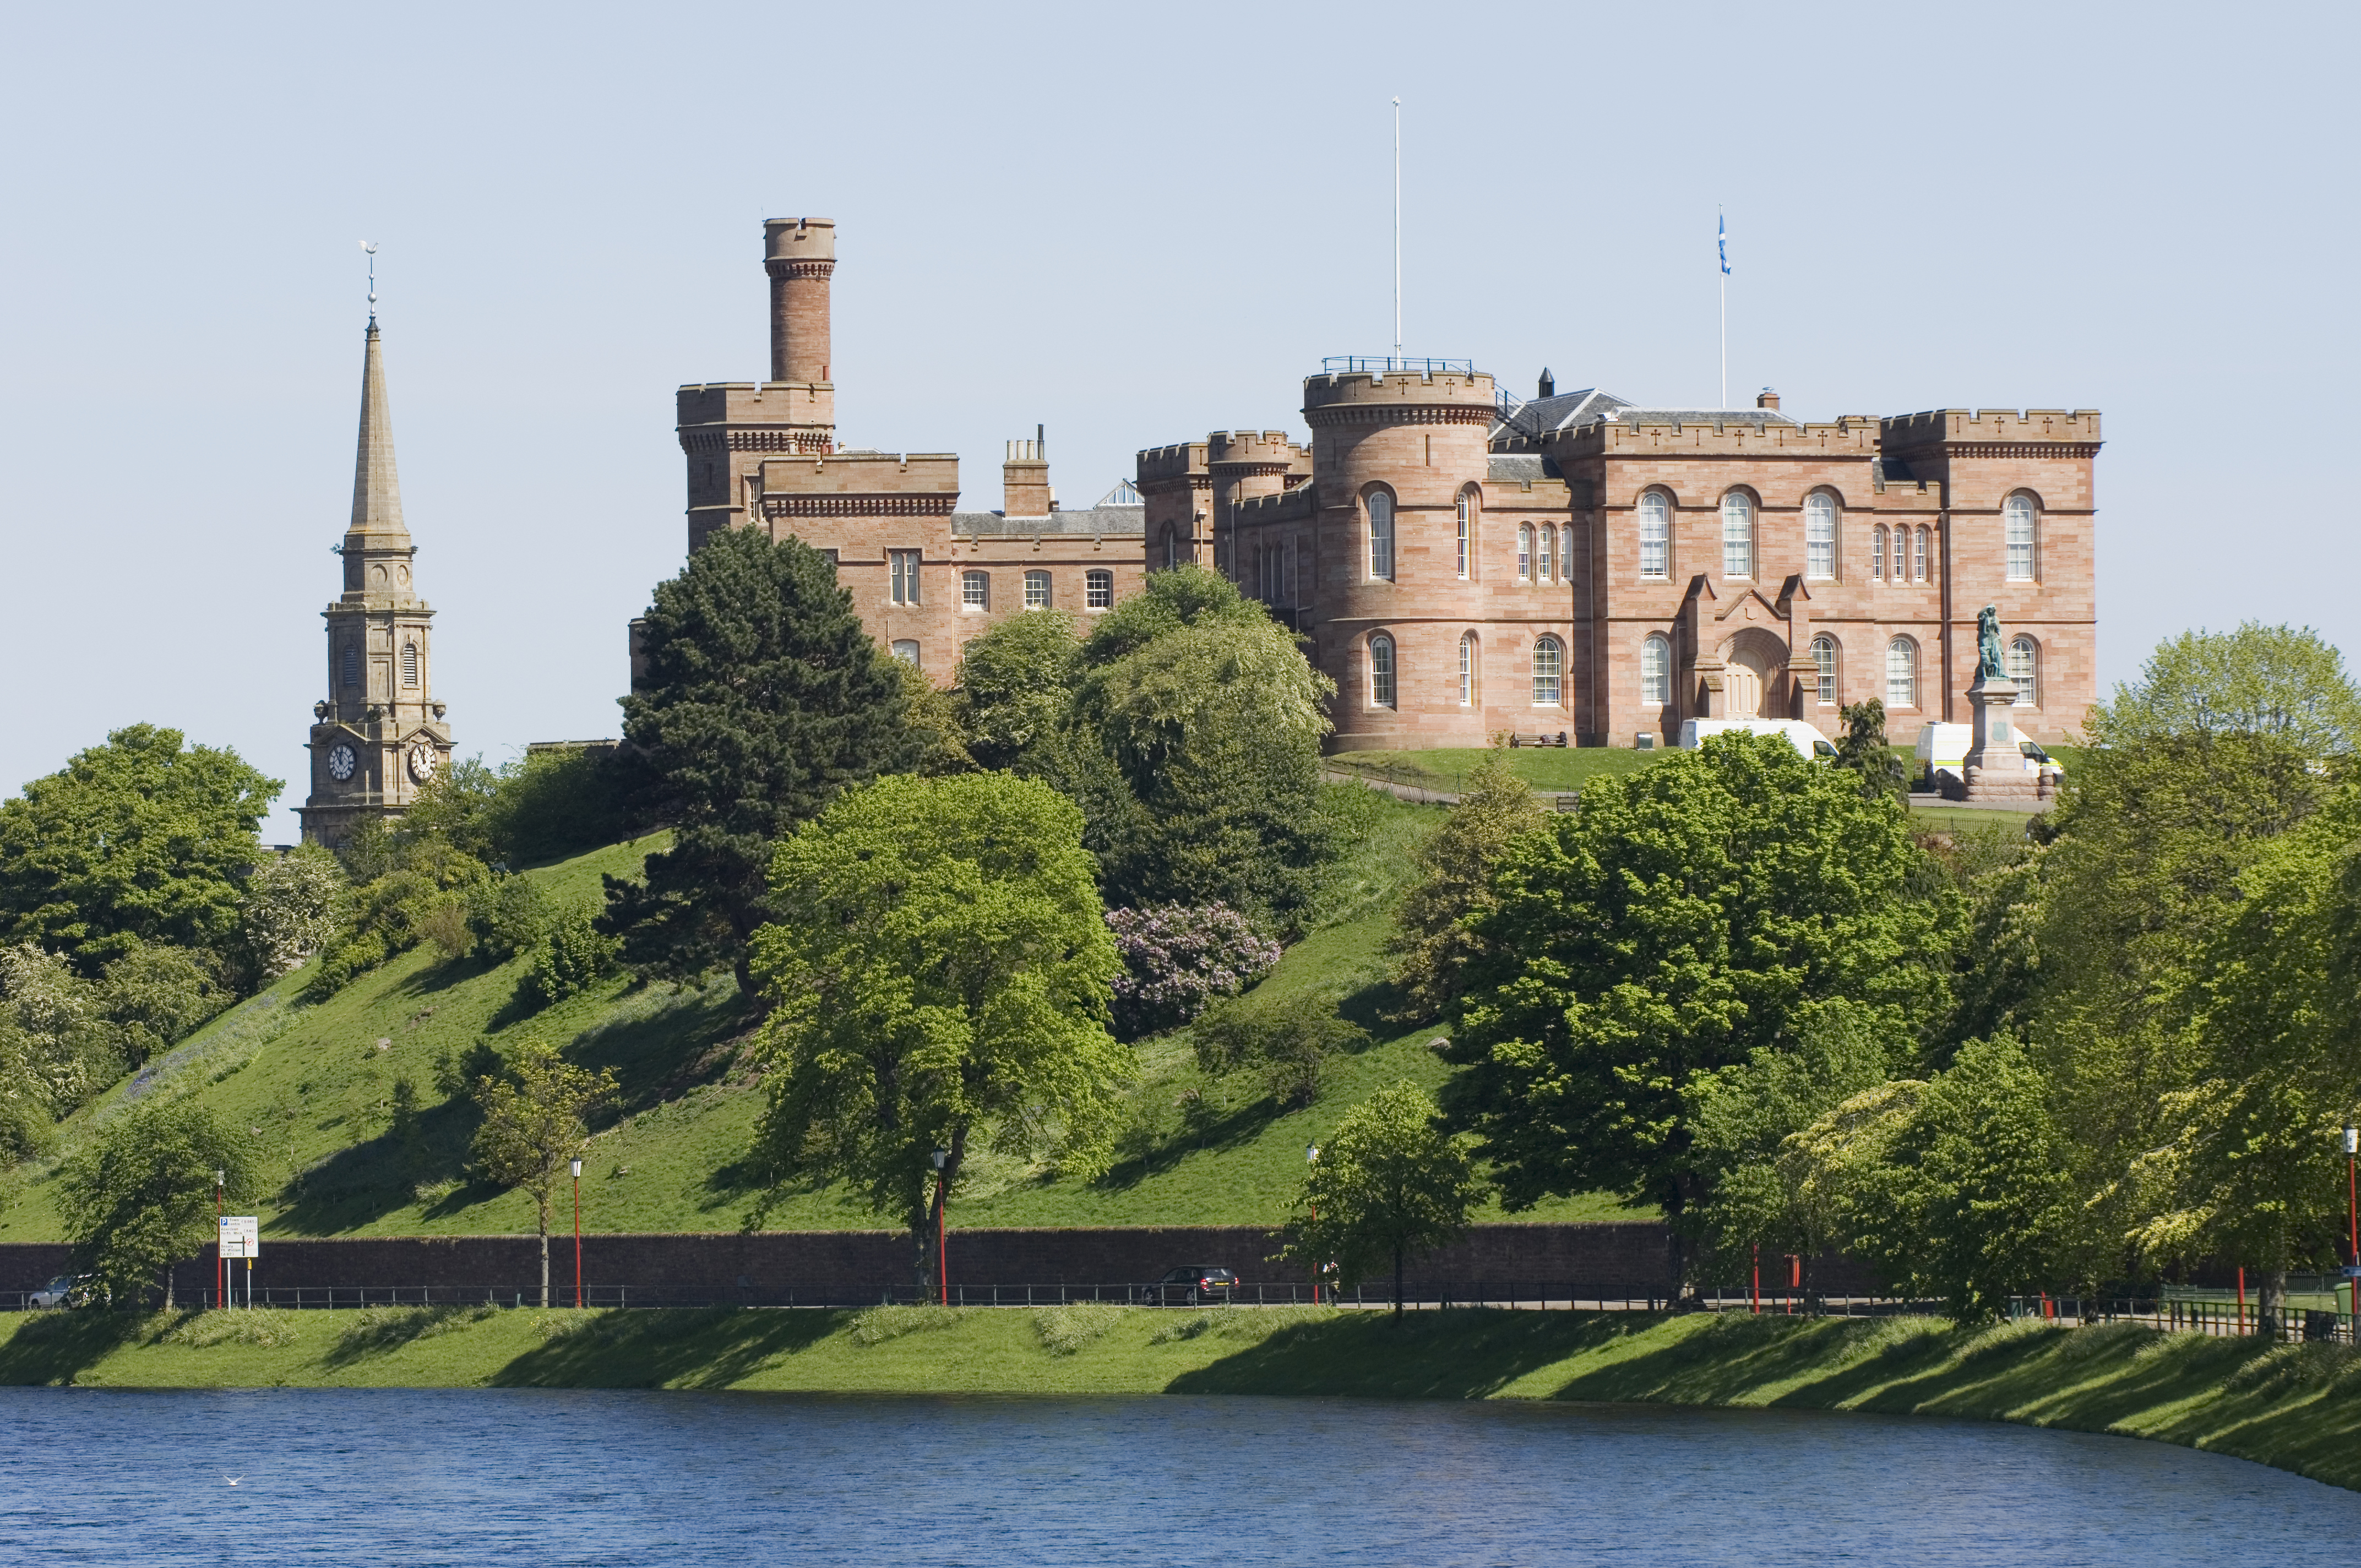 Inverness Castle | Inverness, Scotland Attractions